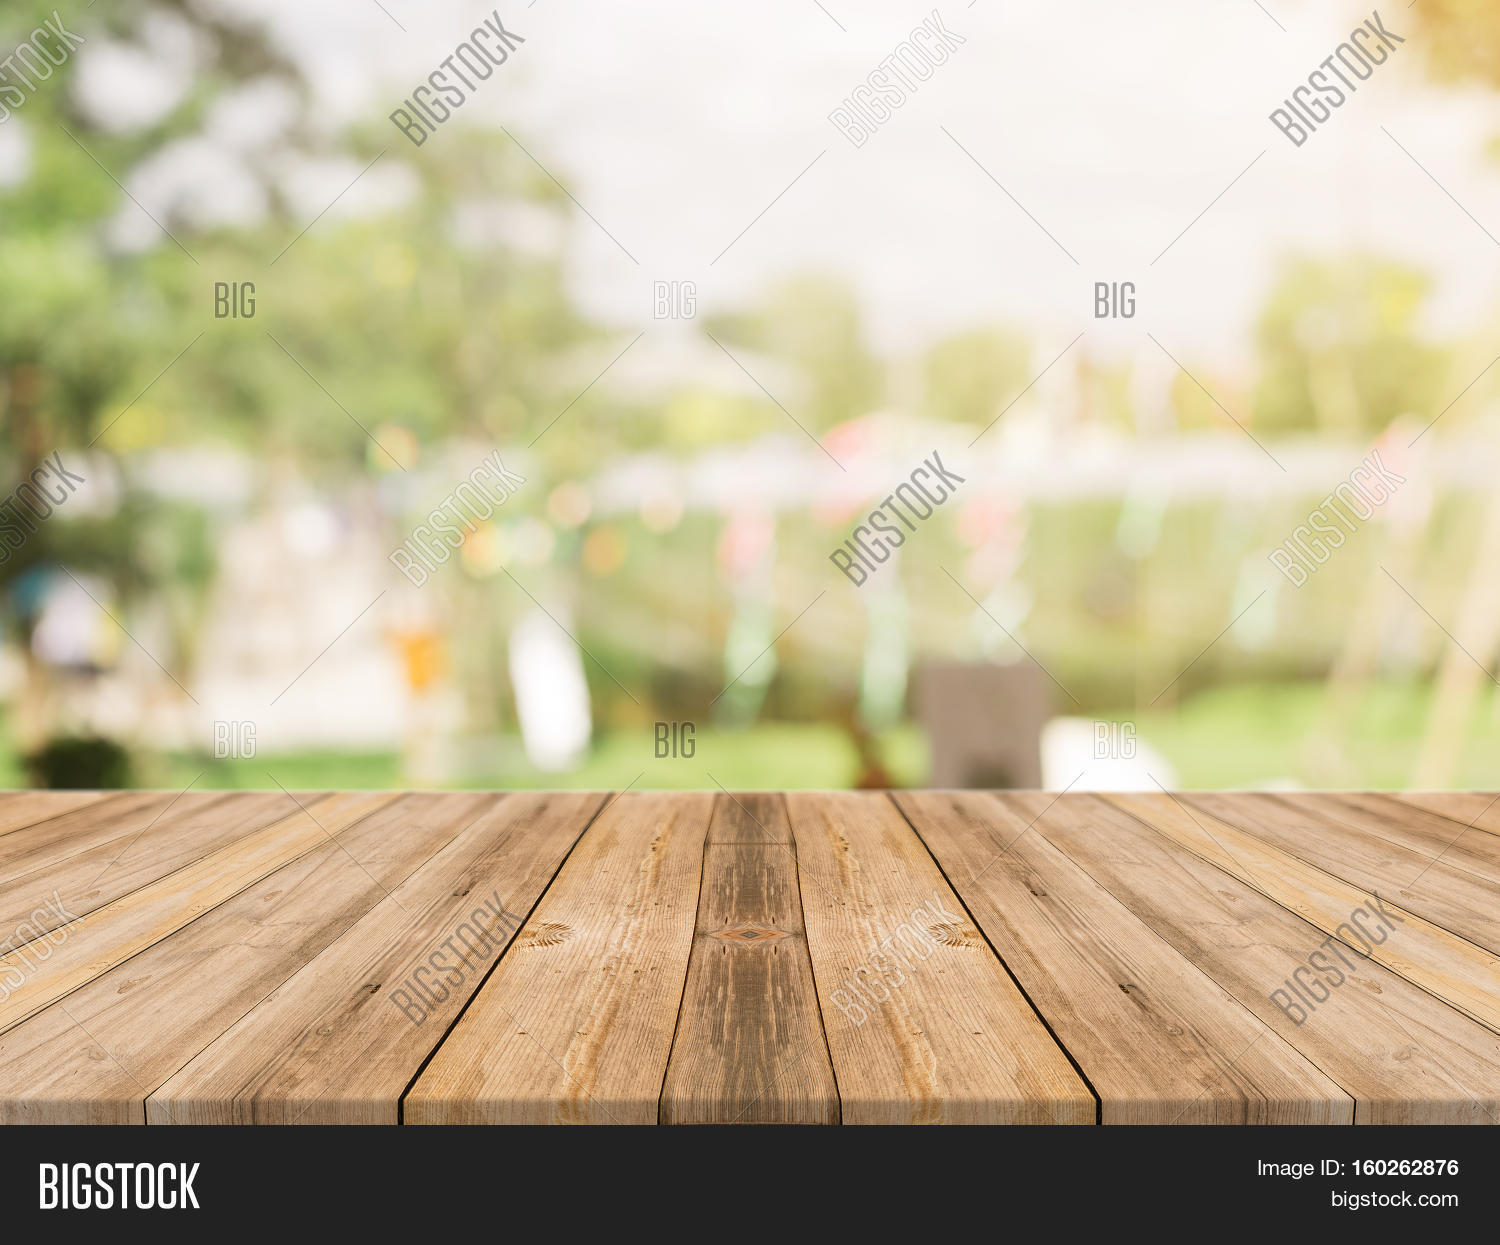 Picnic Table Background wooden board empty table top on of blurred background. perspective